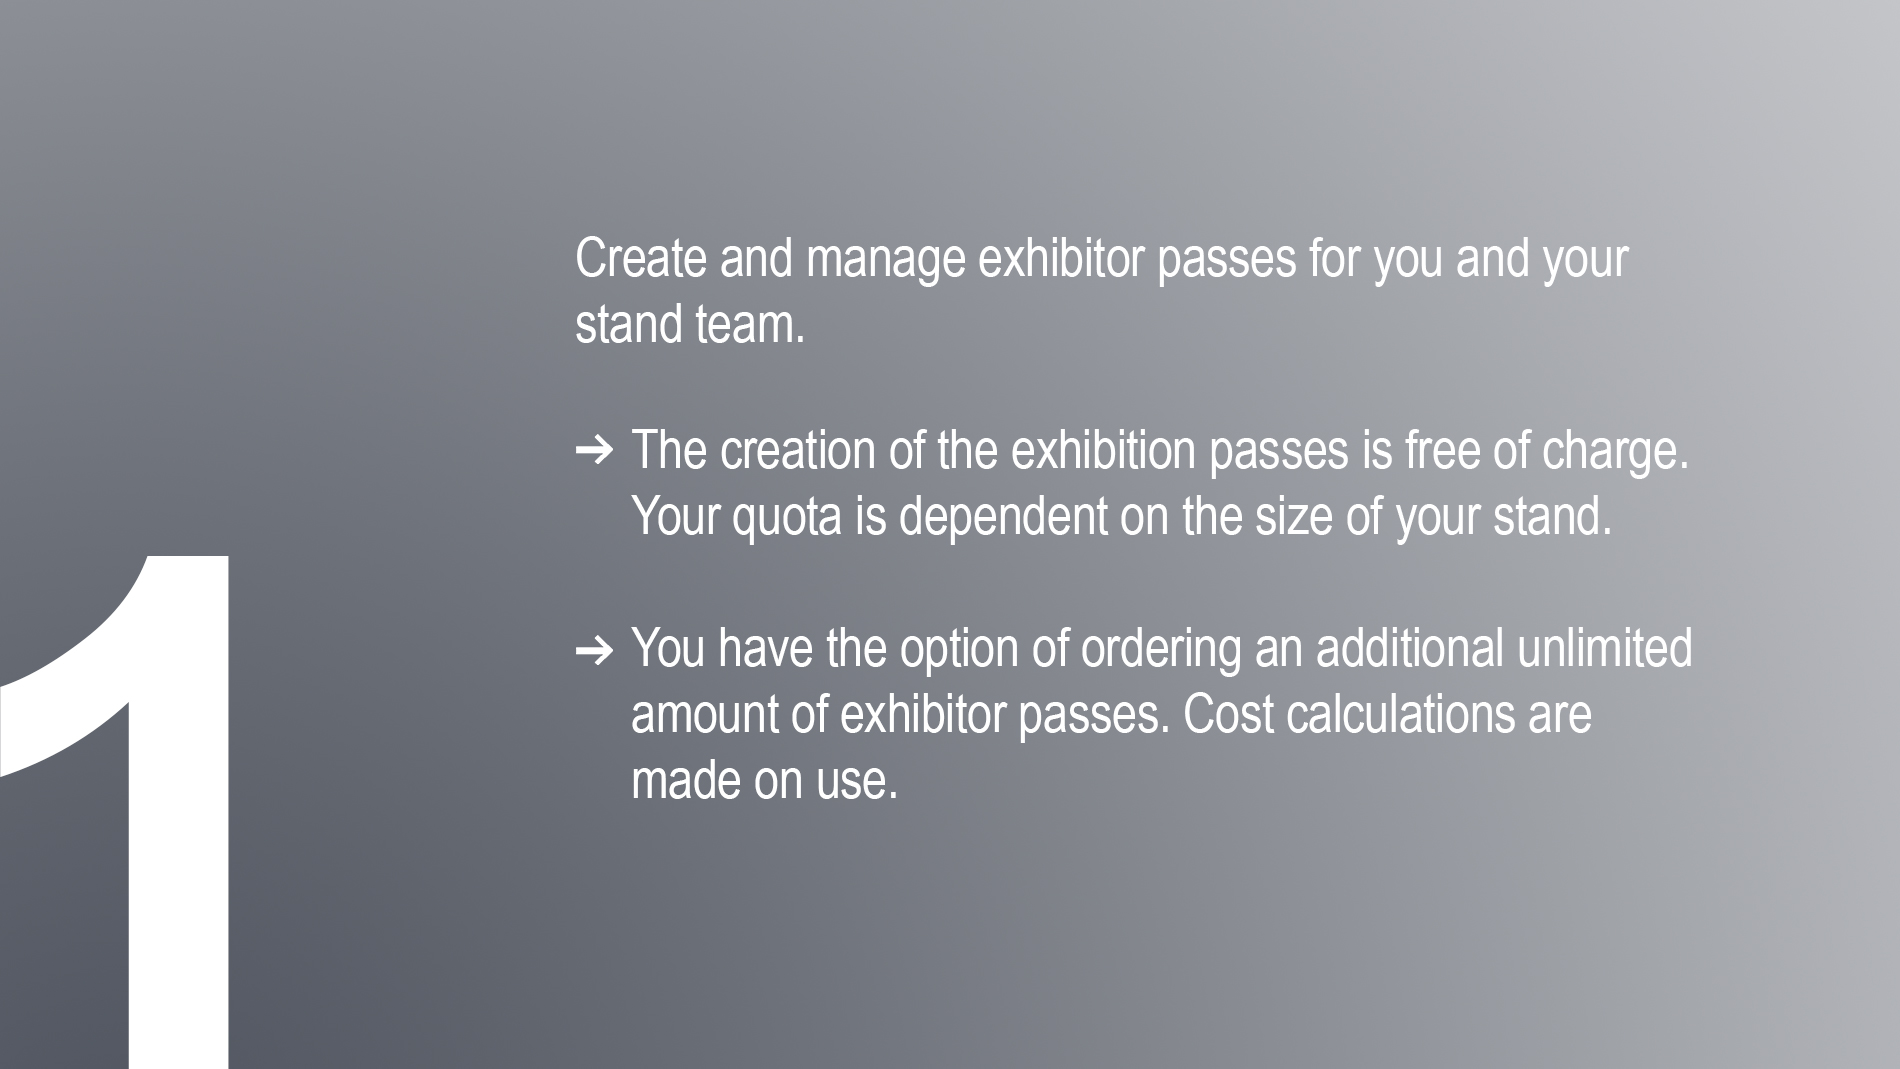 Ticket services for exhibitors